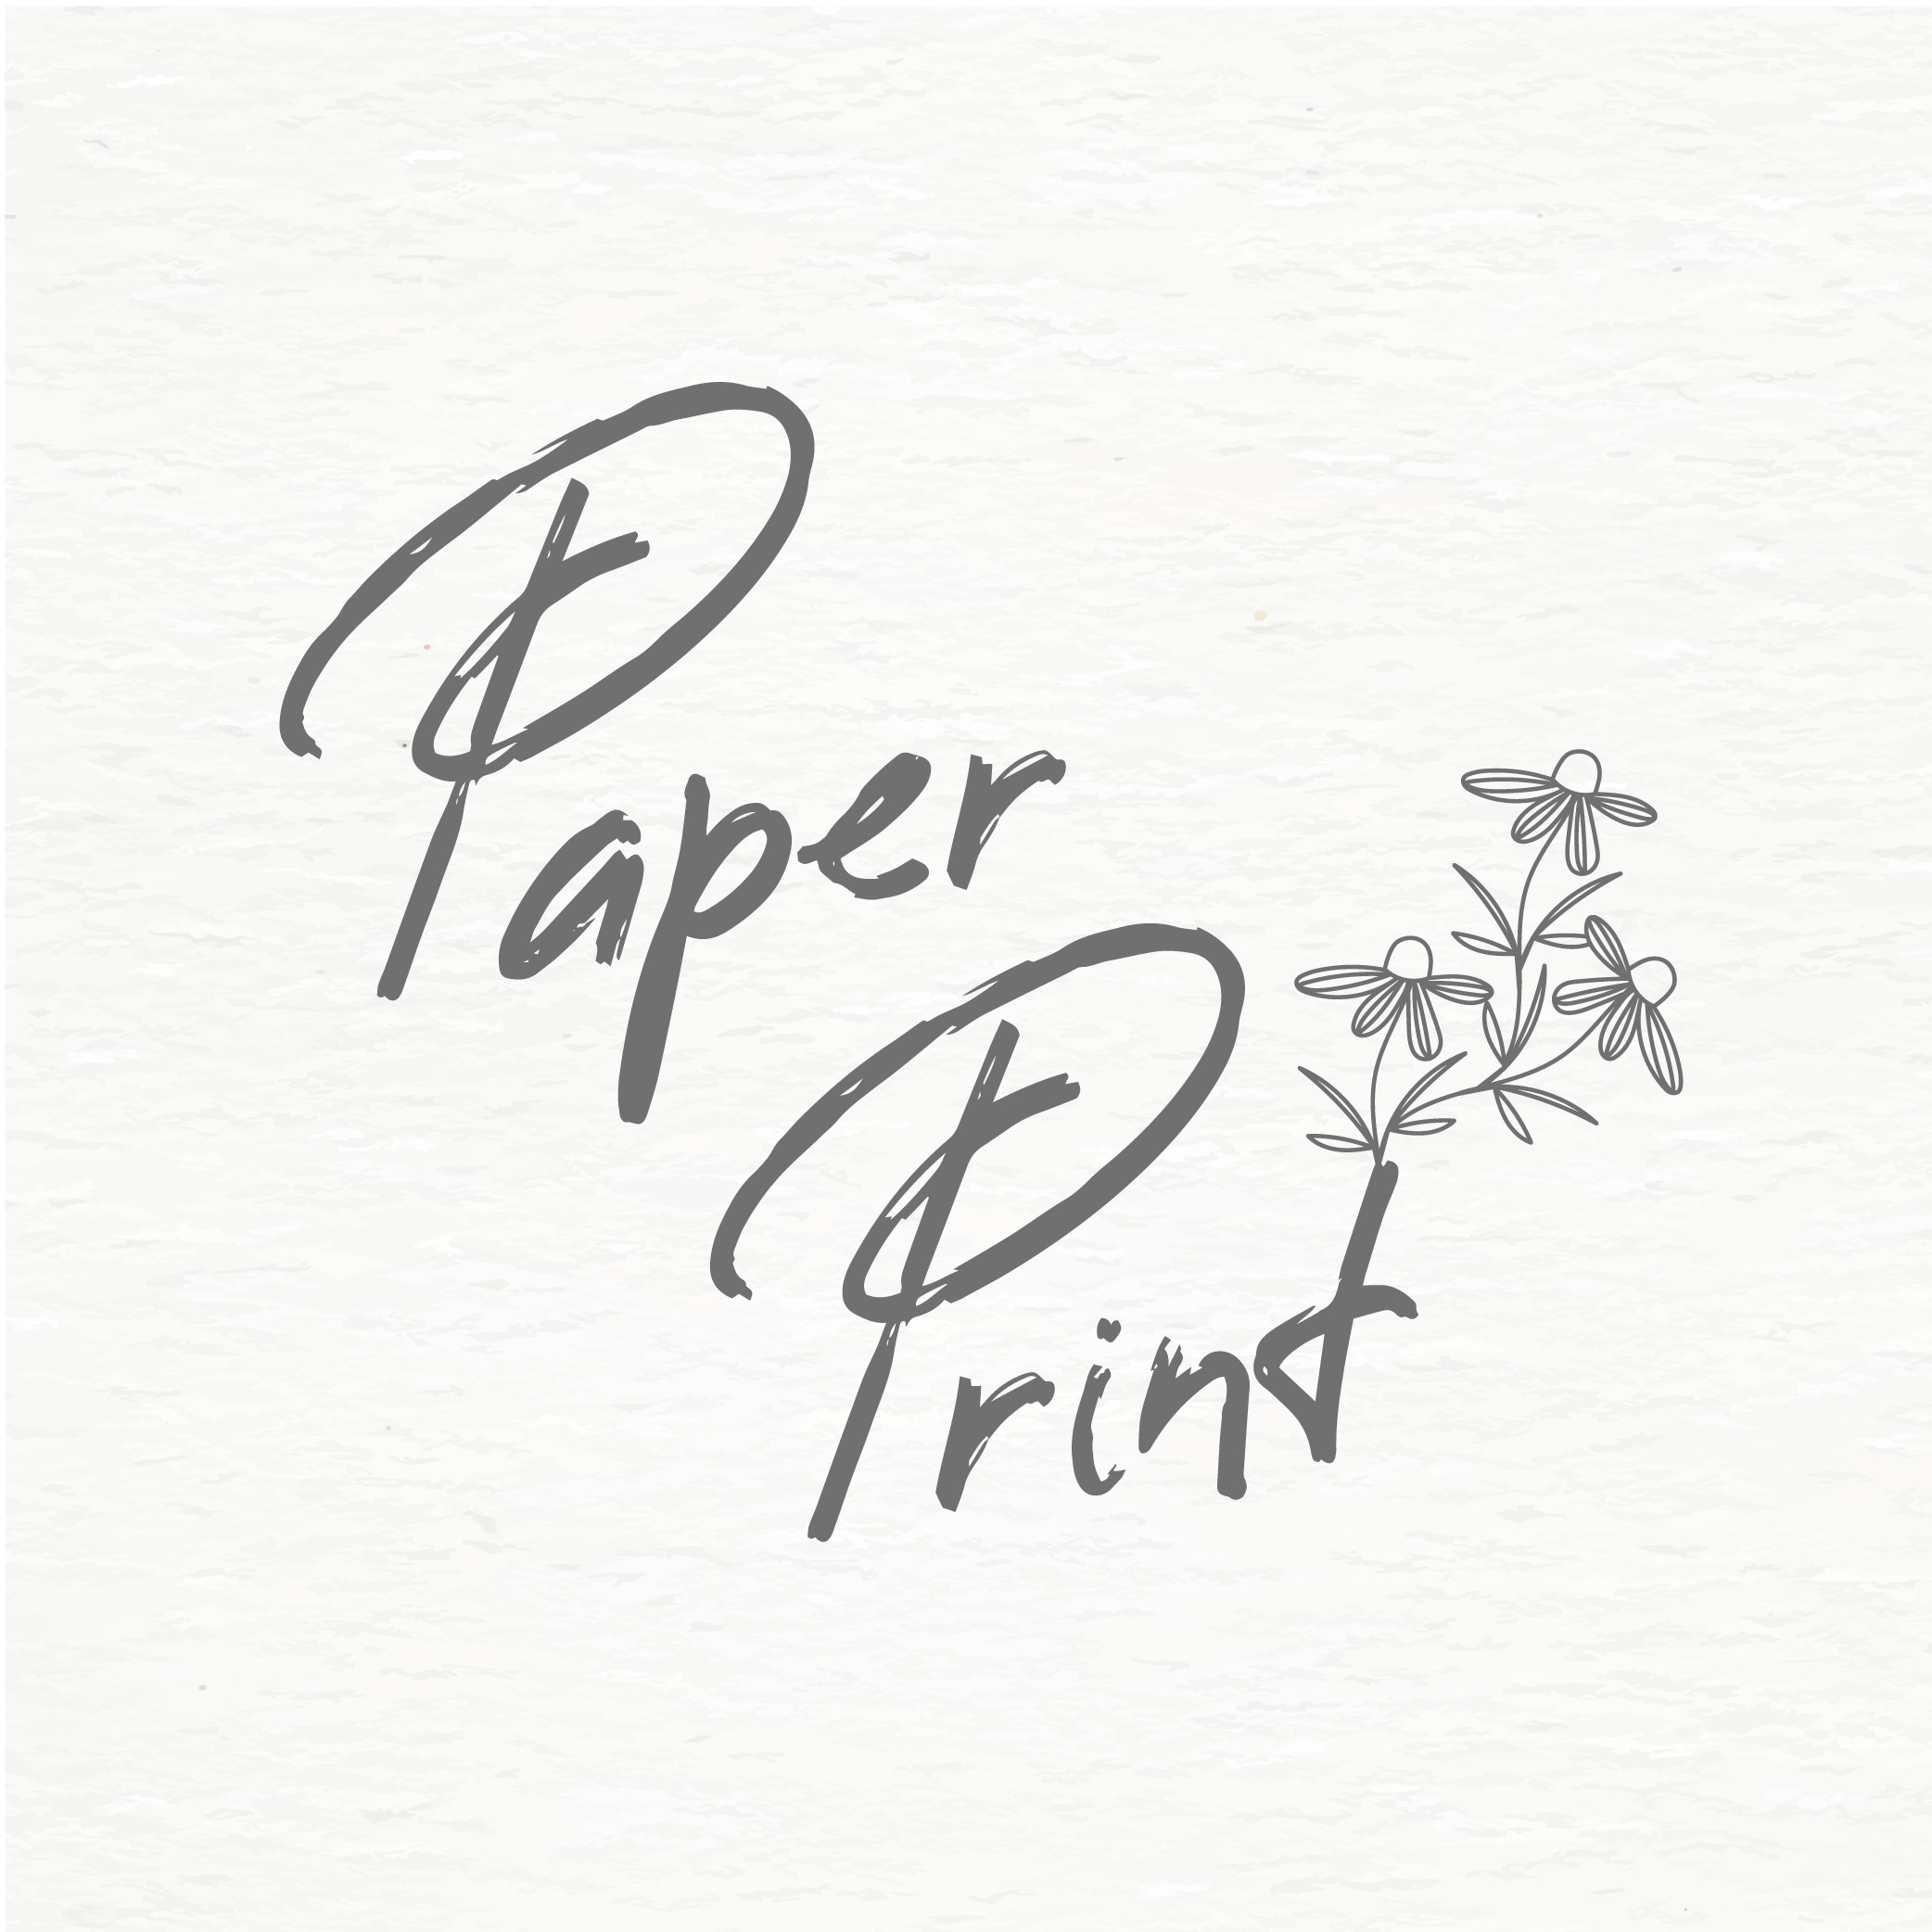 PaperPrint's profile picture